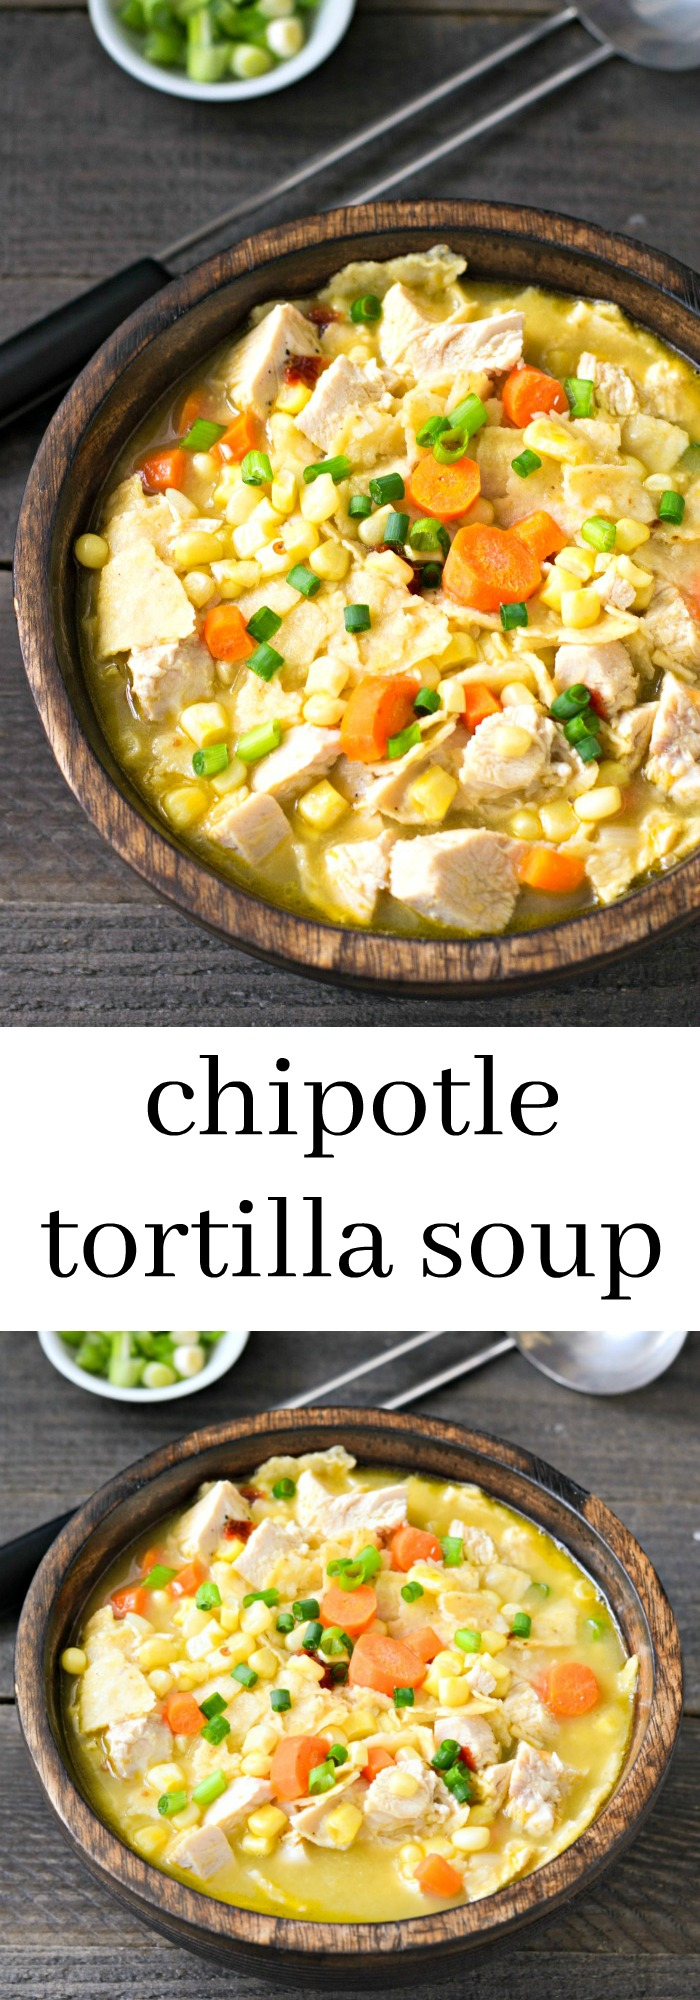 Chipotle Tortilla Soup - Real Food Real Deals